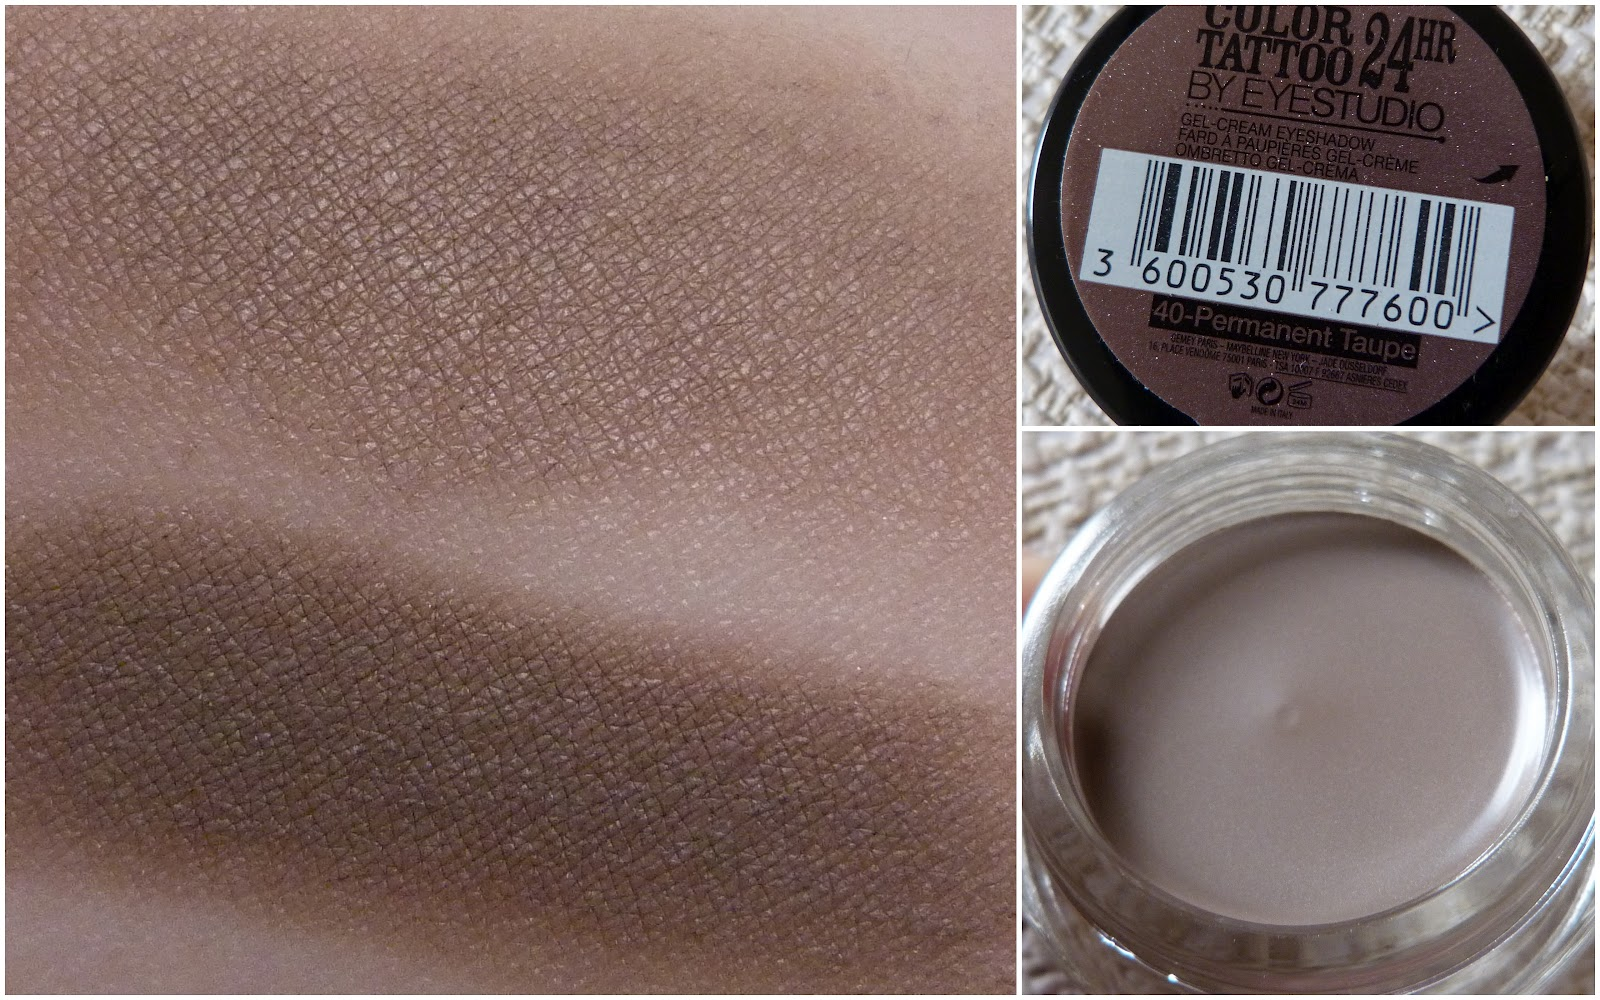 Maybelline Color Tattoo 24hr Permanent Taupe love love